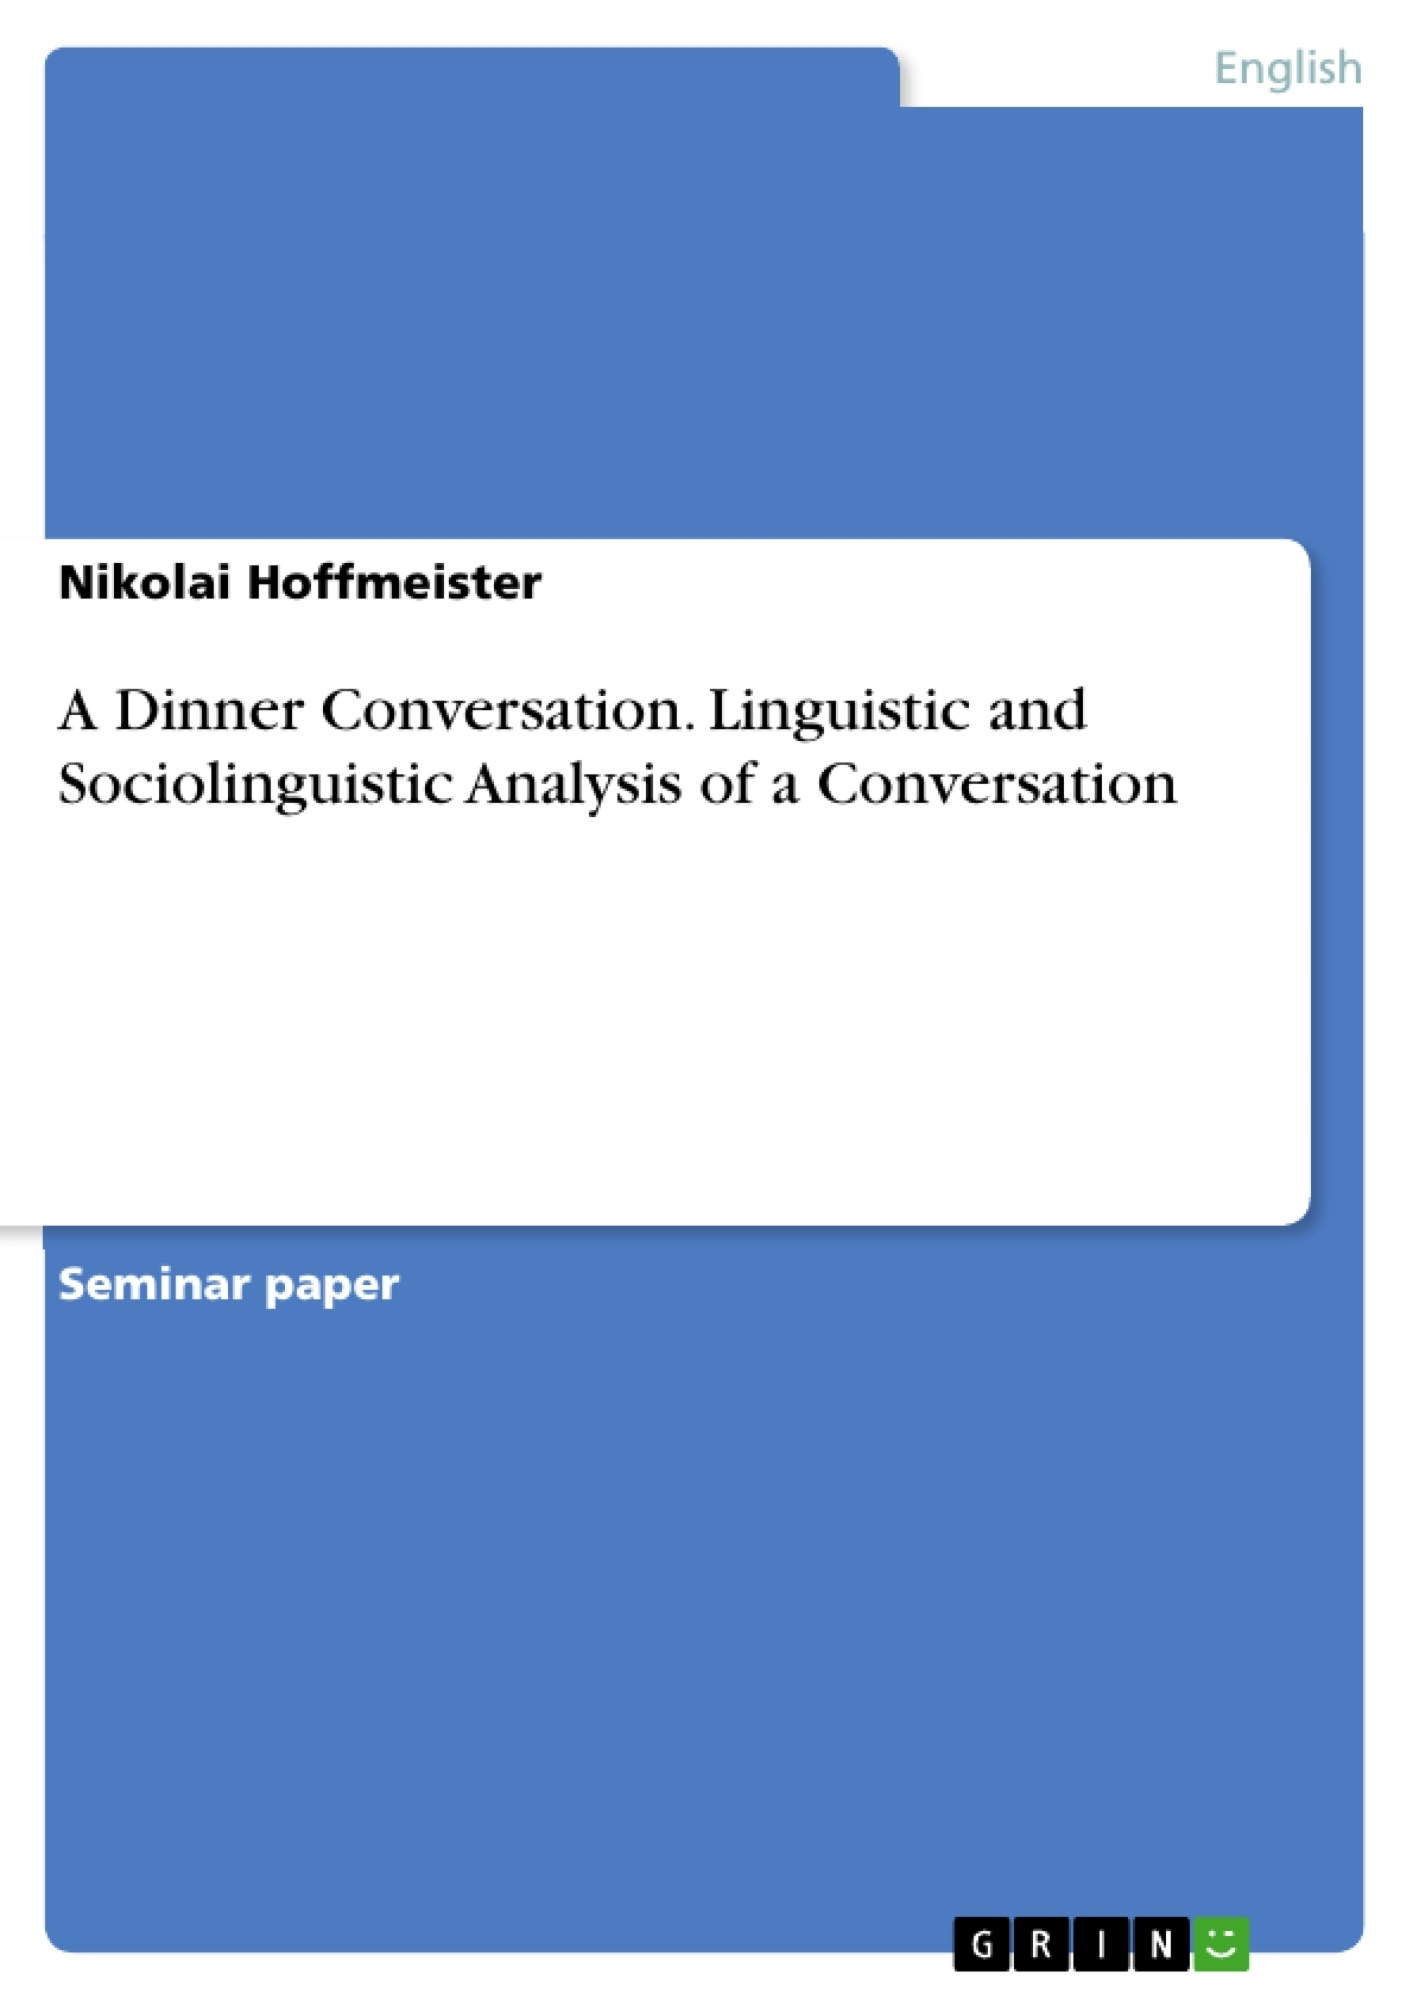 Title: A Dinner Conversation. Linguistic and Sociolinguistic Analysis of a Conversation